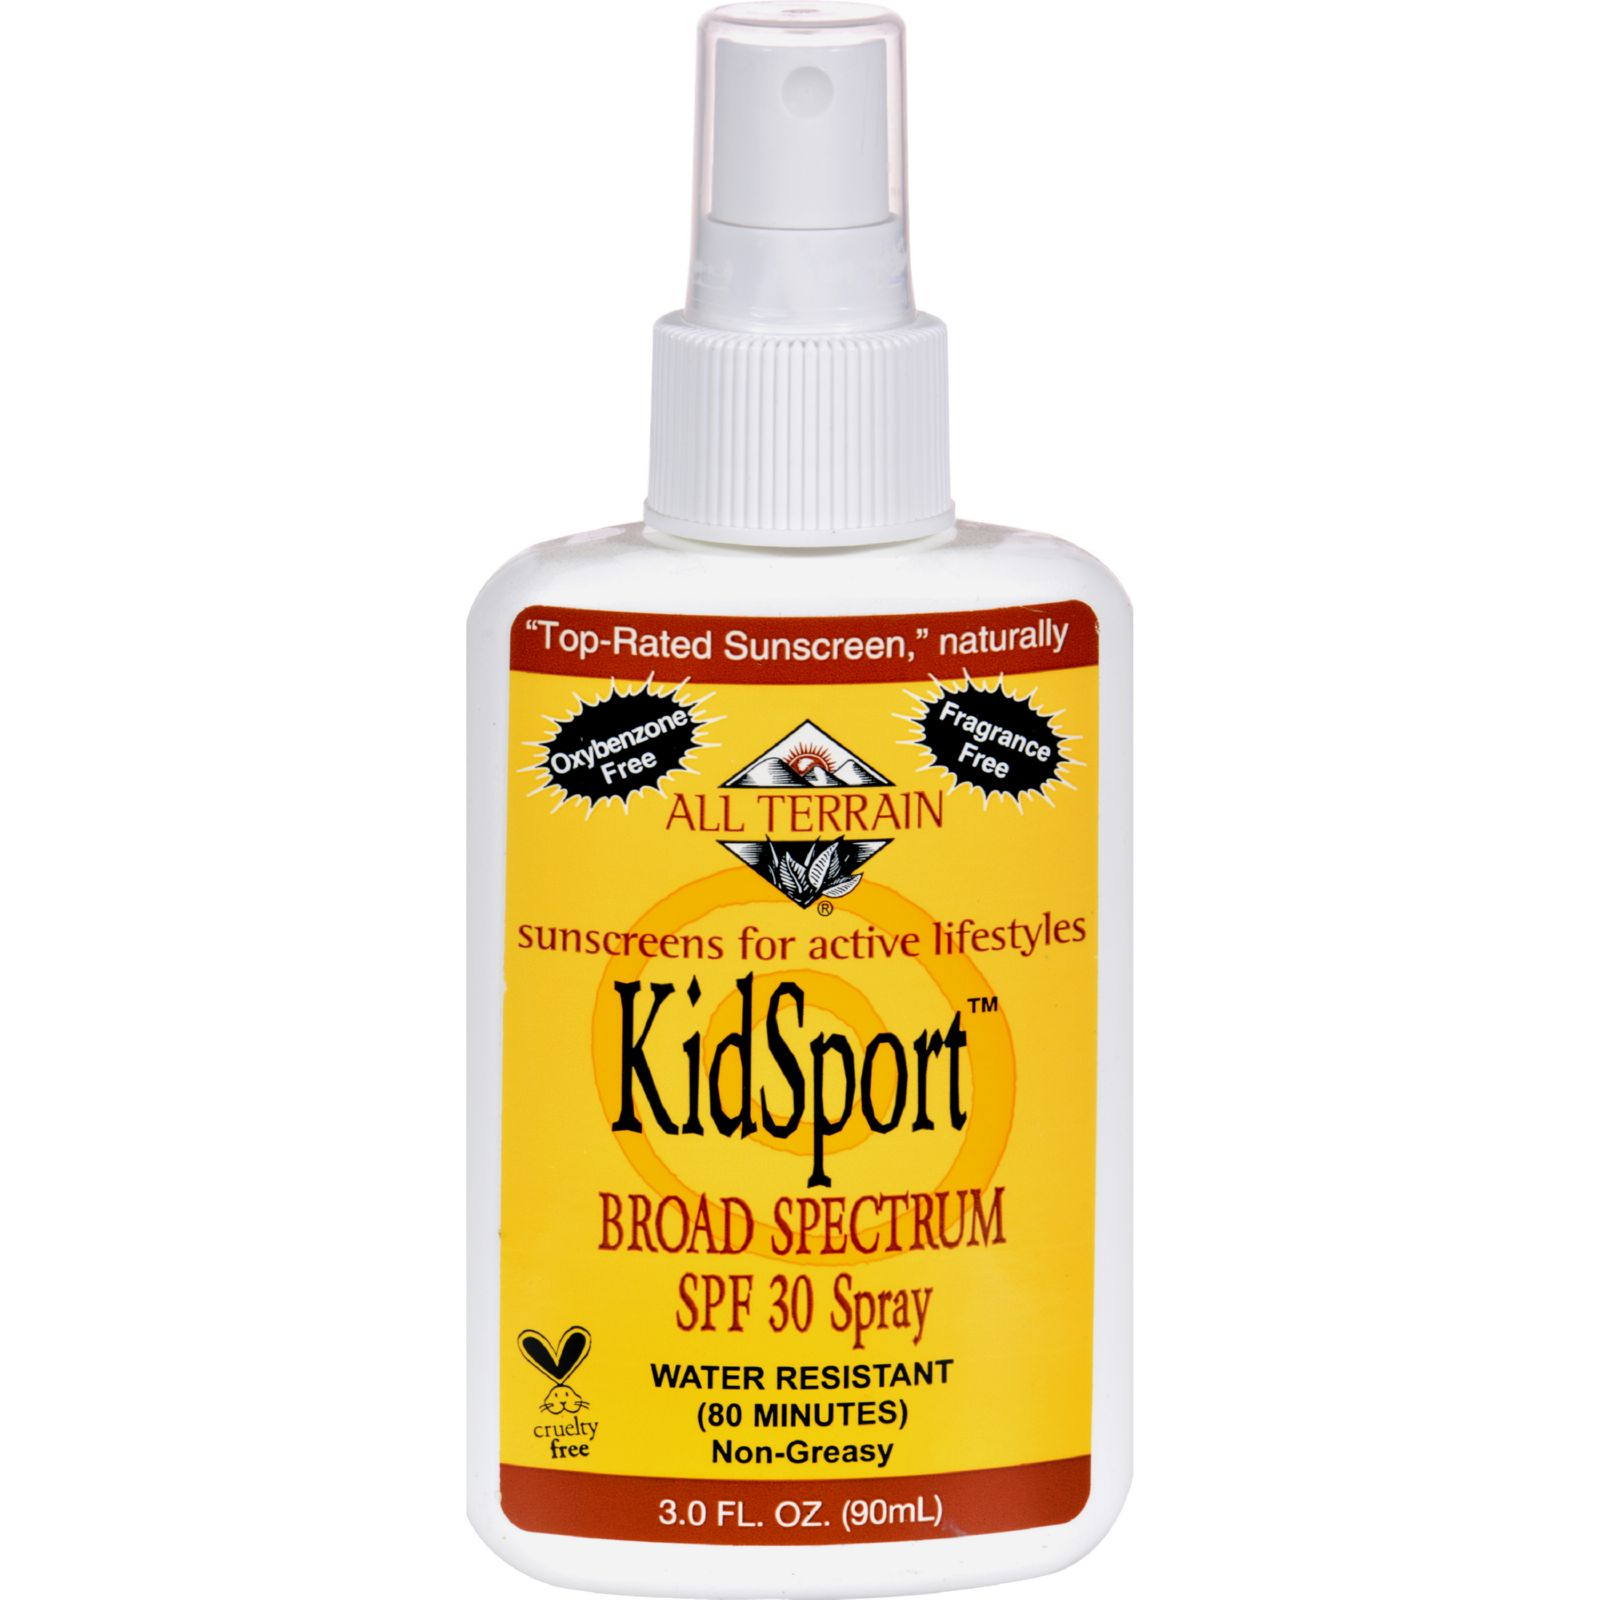 All Terrain Kid Sport Sunscreen SPF 30 - 3 fl oz